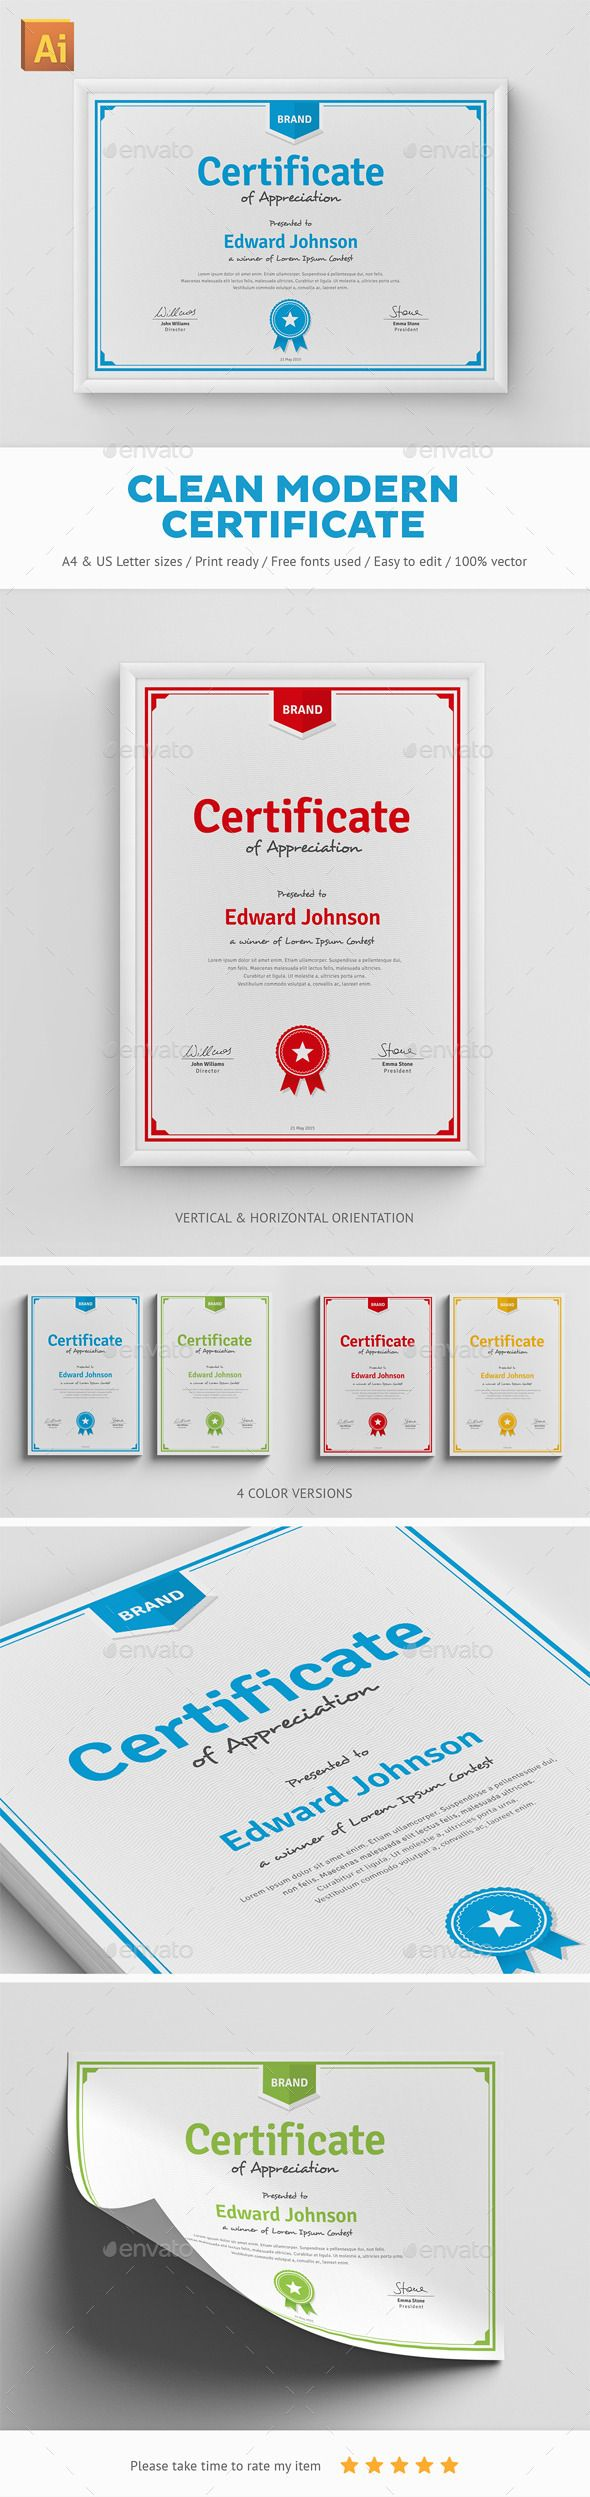 22 best certificate images on pinterest certificate templates clean modern certificate yadclub Gallery